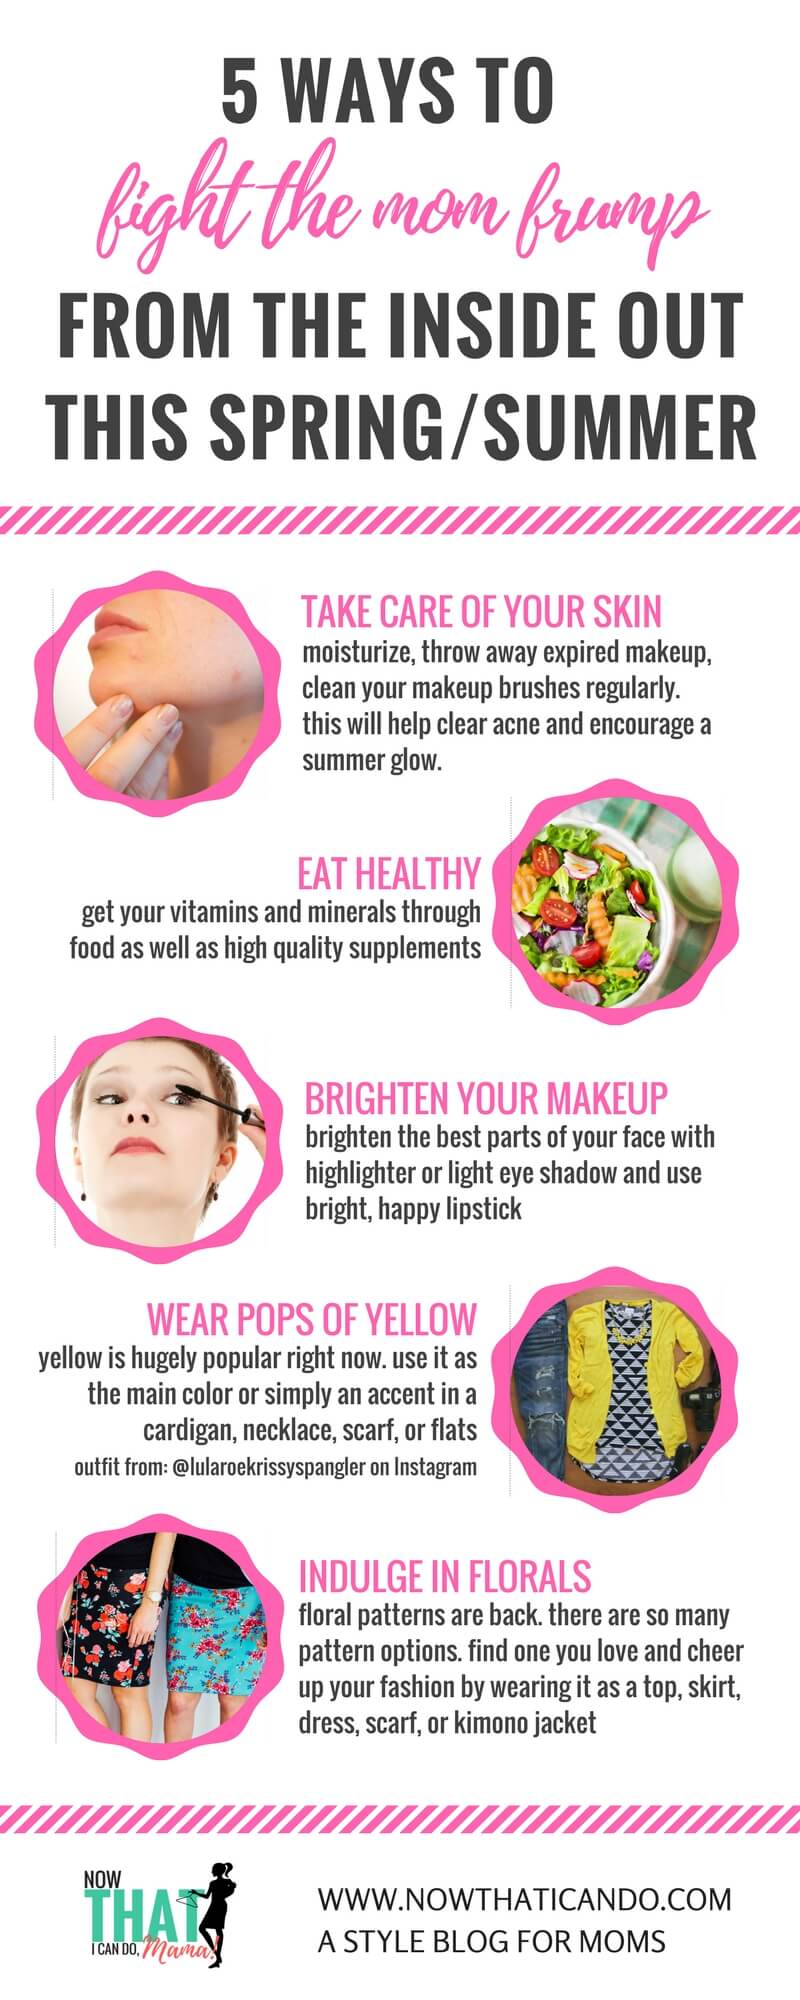 Tips for feeling and looking your best as a busy mom this spring and summer. I want to try to do all of these things!